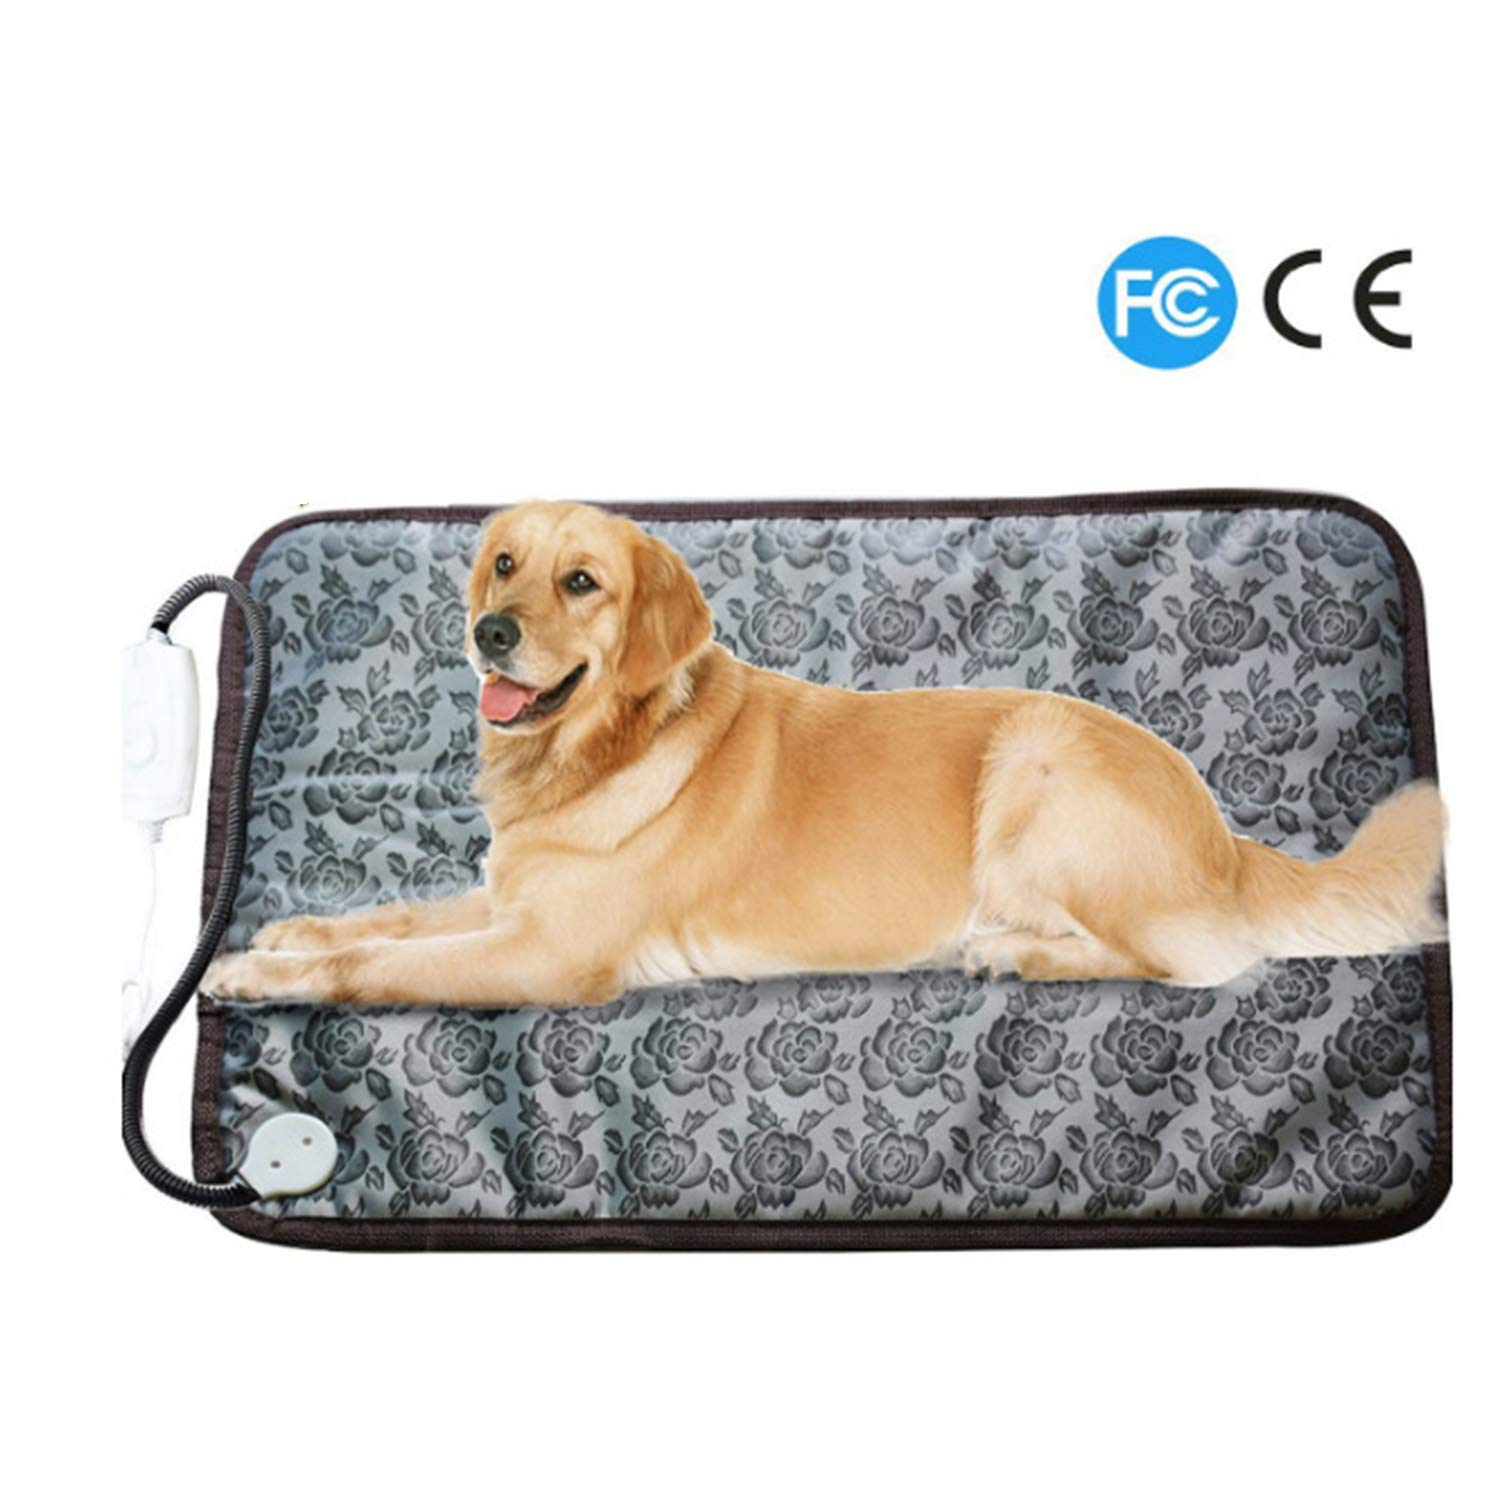 Large Pet Heating Pad Electric Blanket impermeabile antigelo adatto per il riscaldamento a temperatura costante